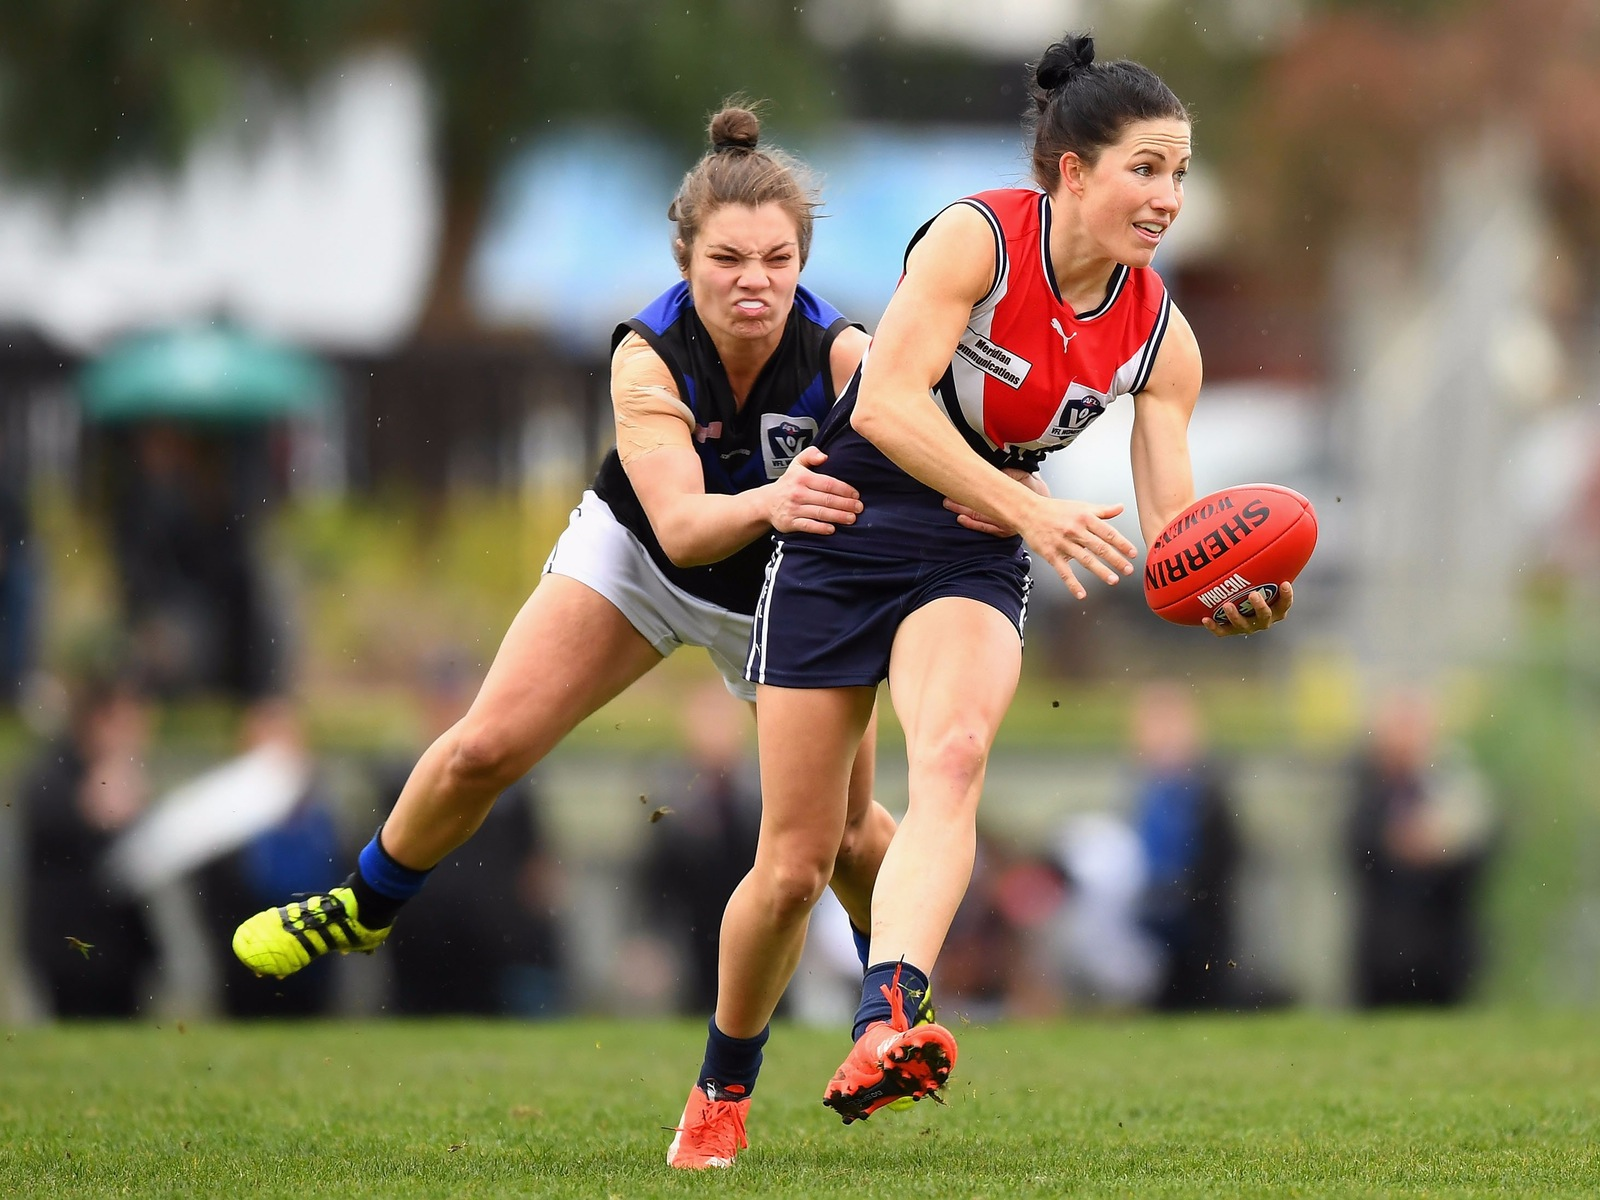 VWFL Grand Final 2016 - Melbourne Uni vs. Darebin